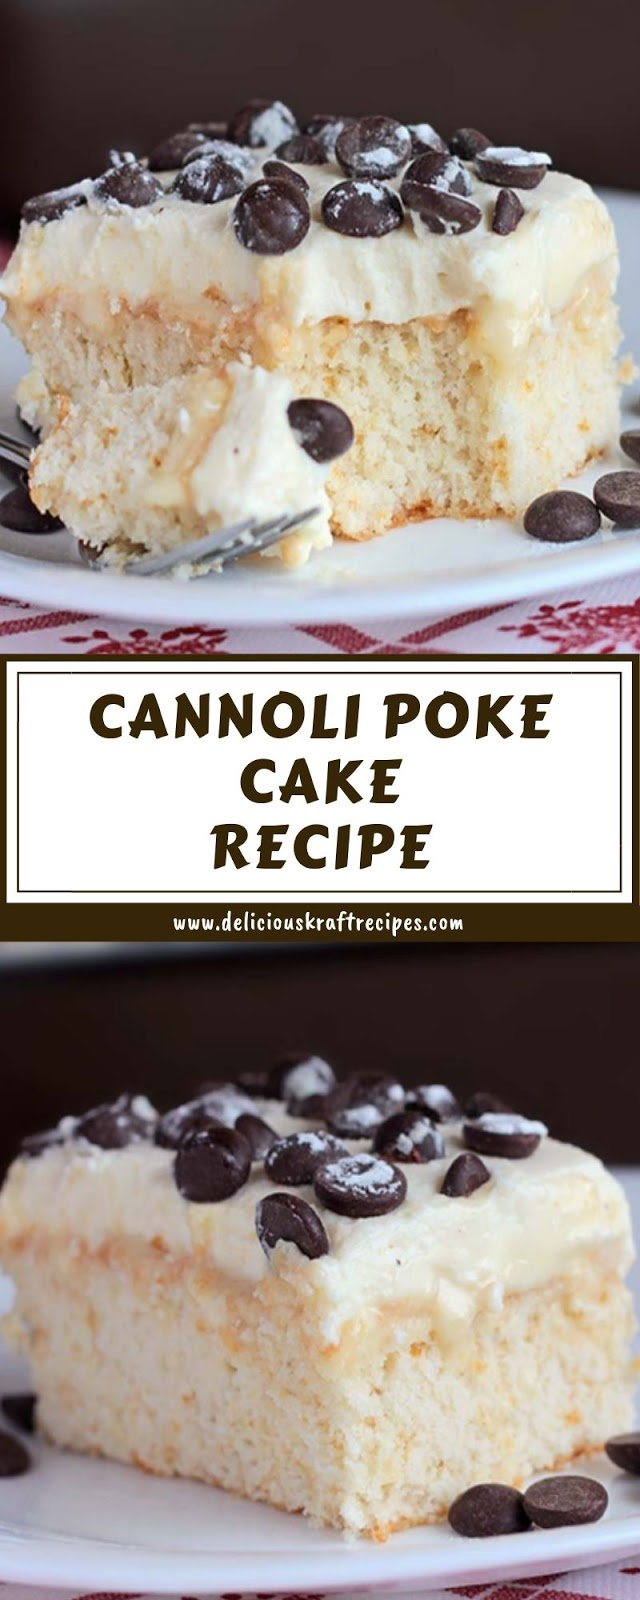 CANNOLI POKE CAKE RECIPE